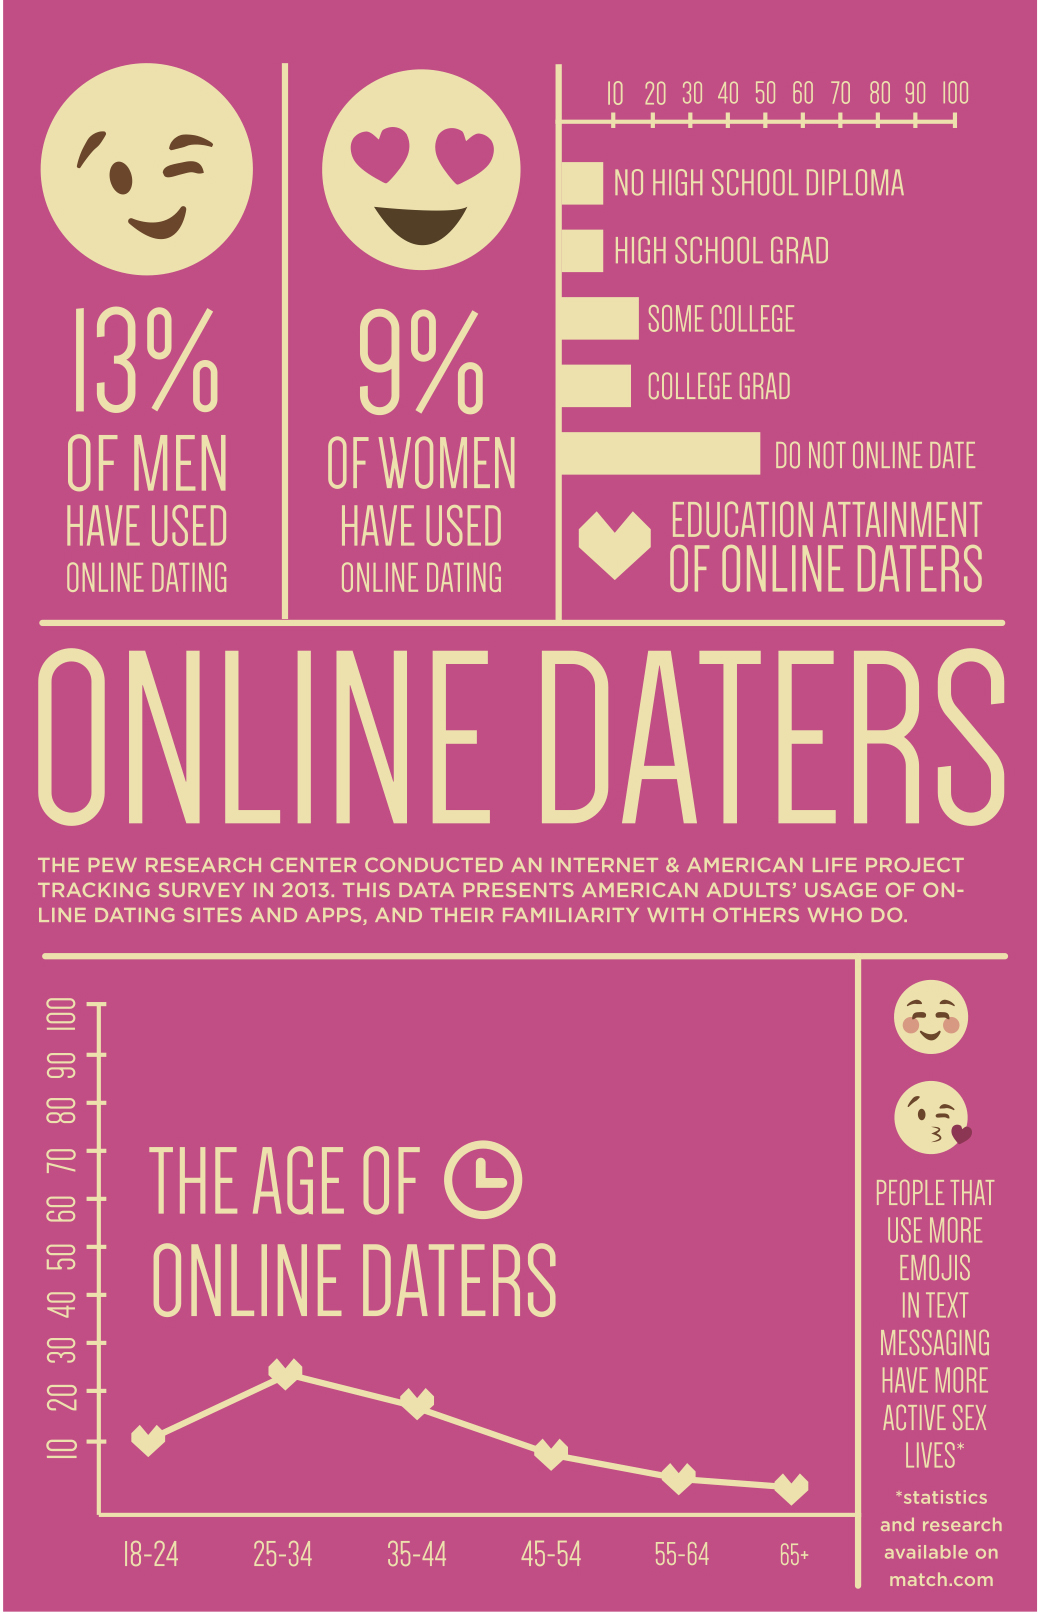 Online dating apps for college students